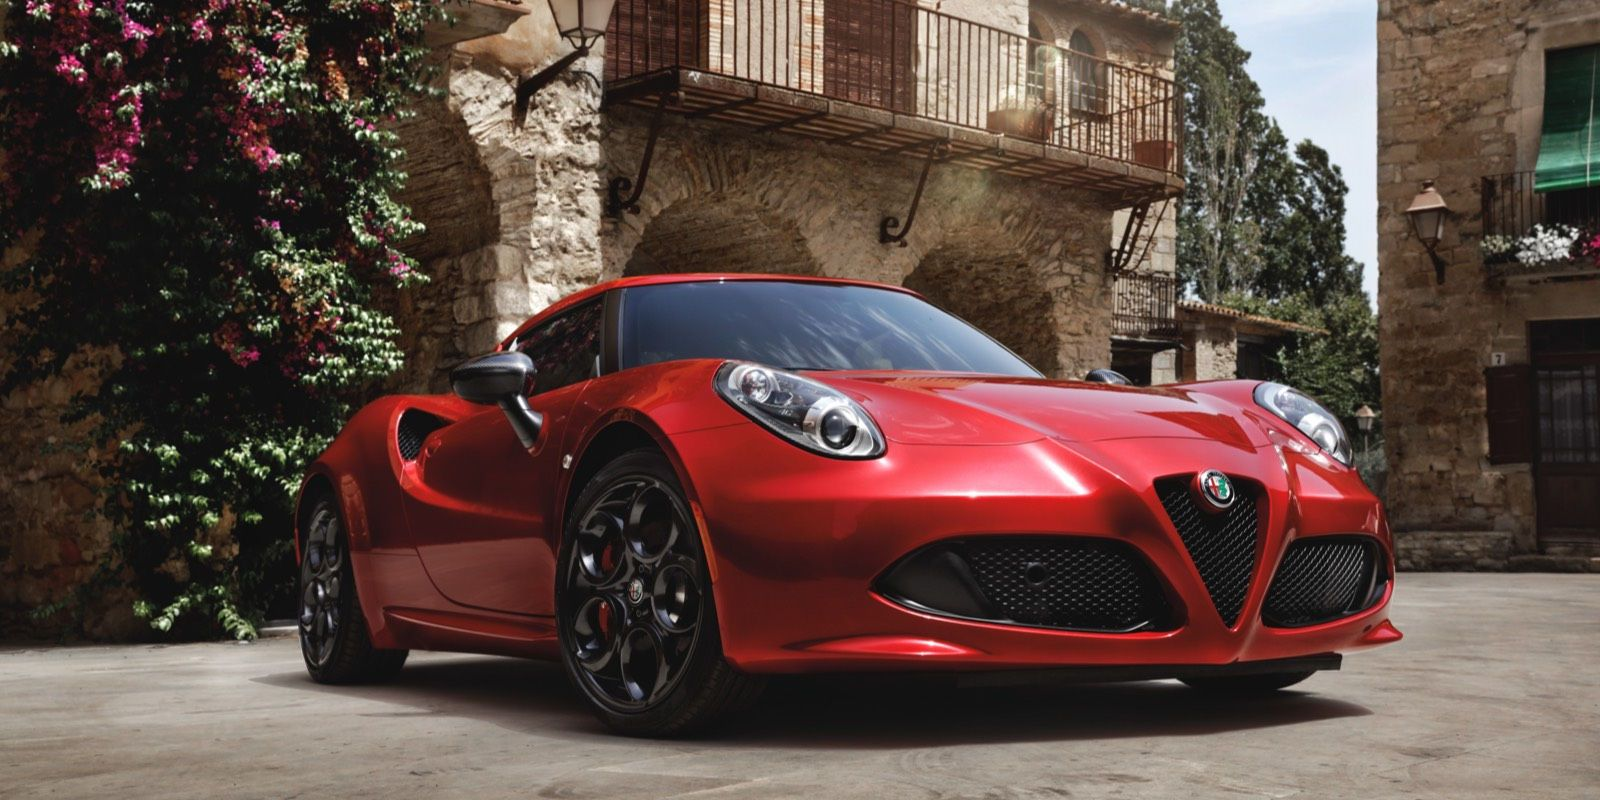 Discover the new Alfa Romeo 4C Coupe performance has